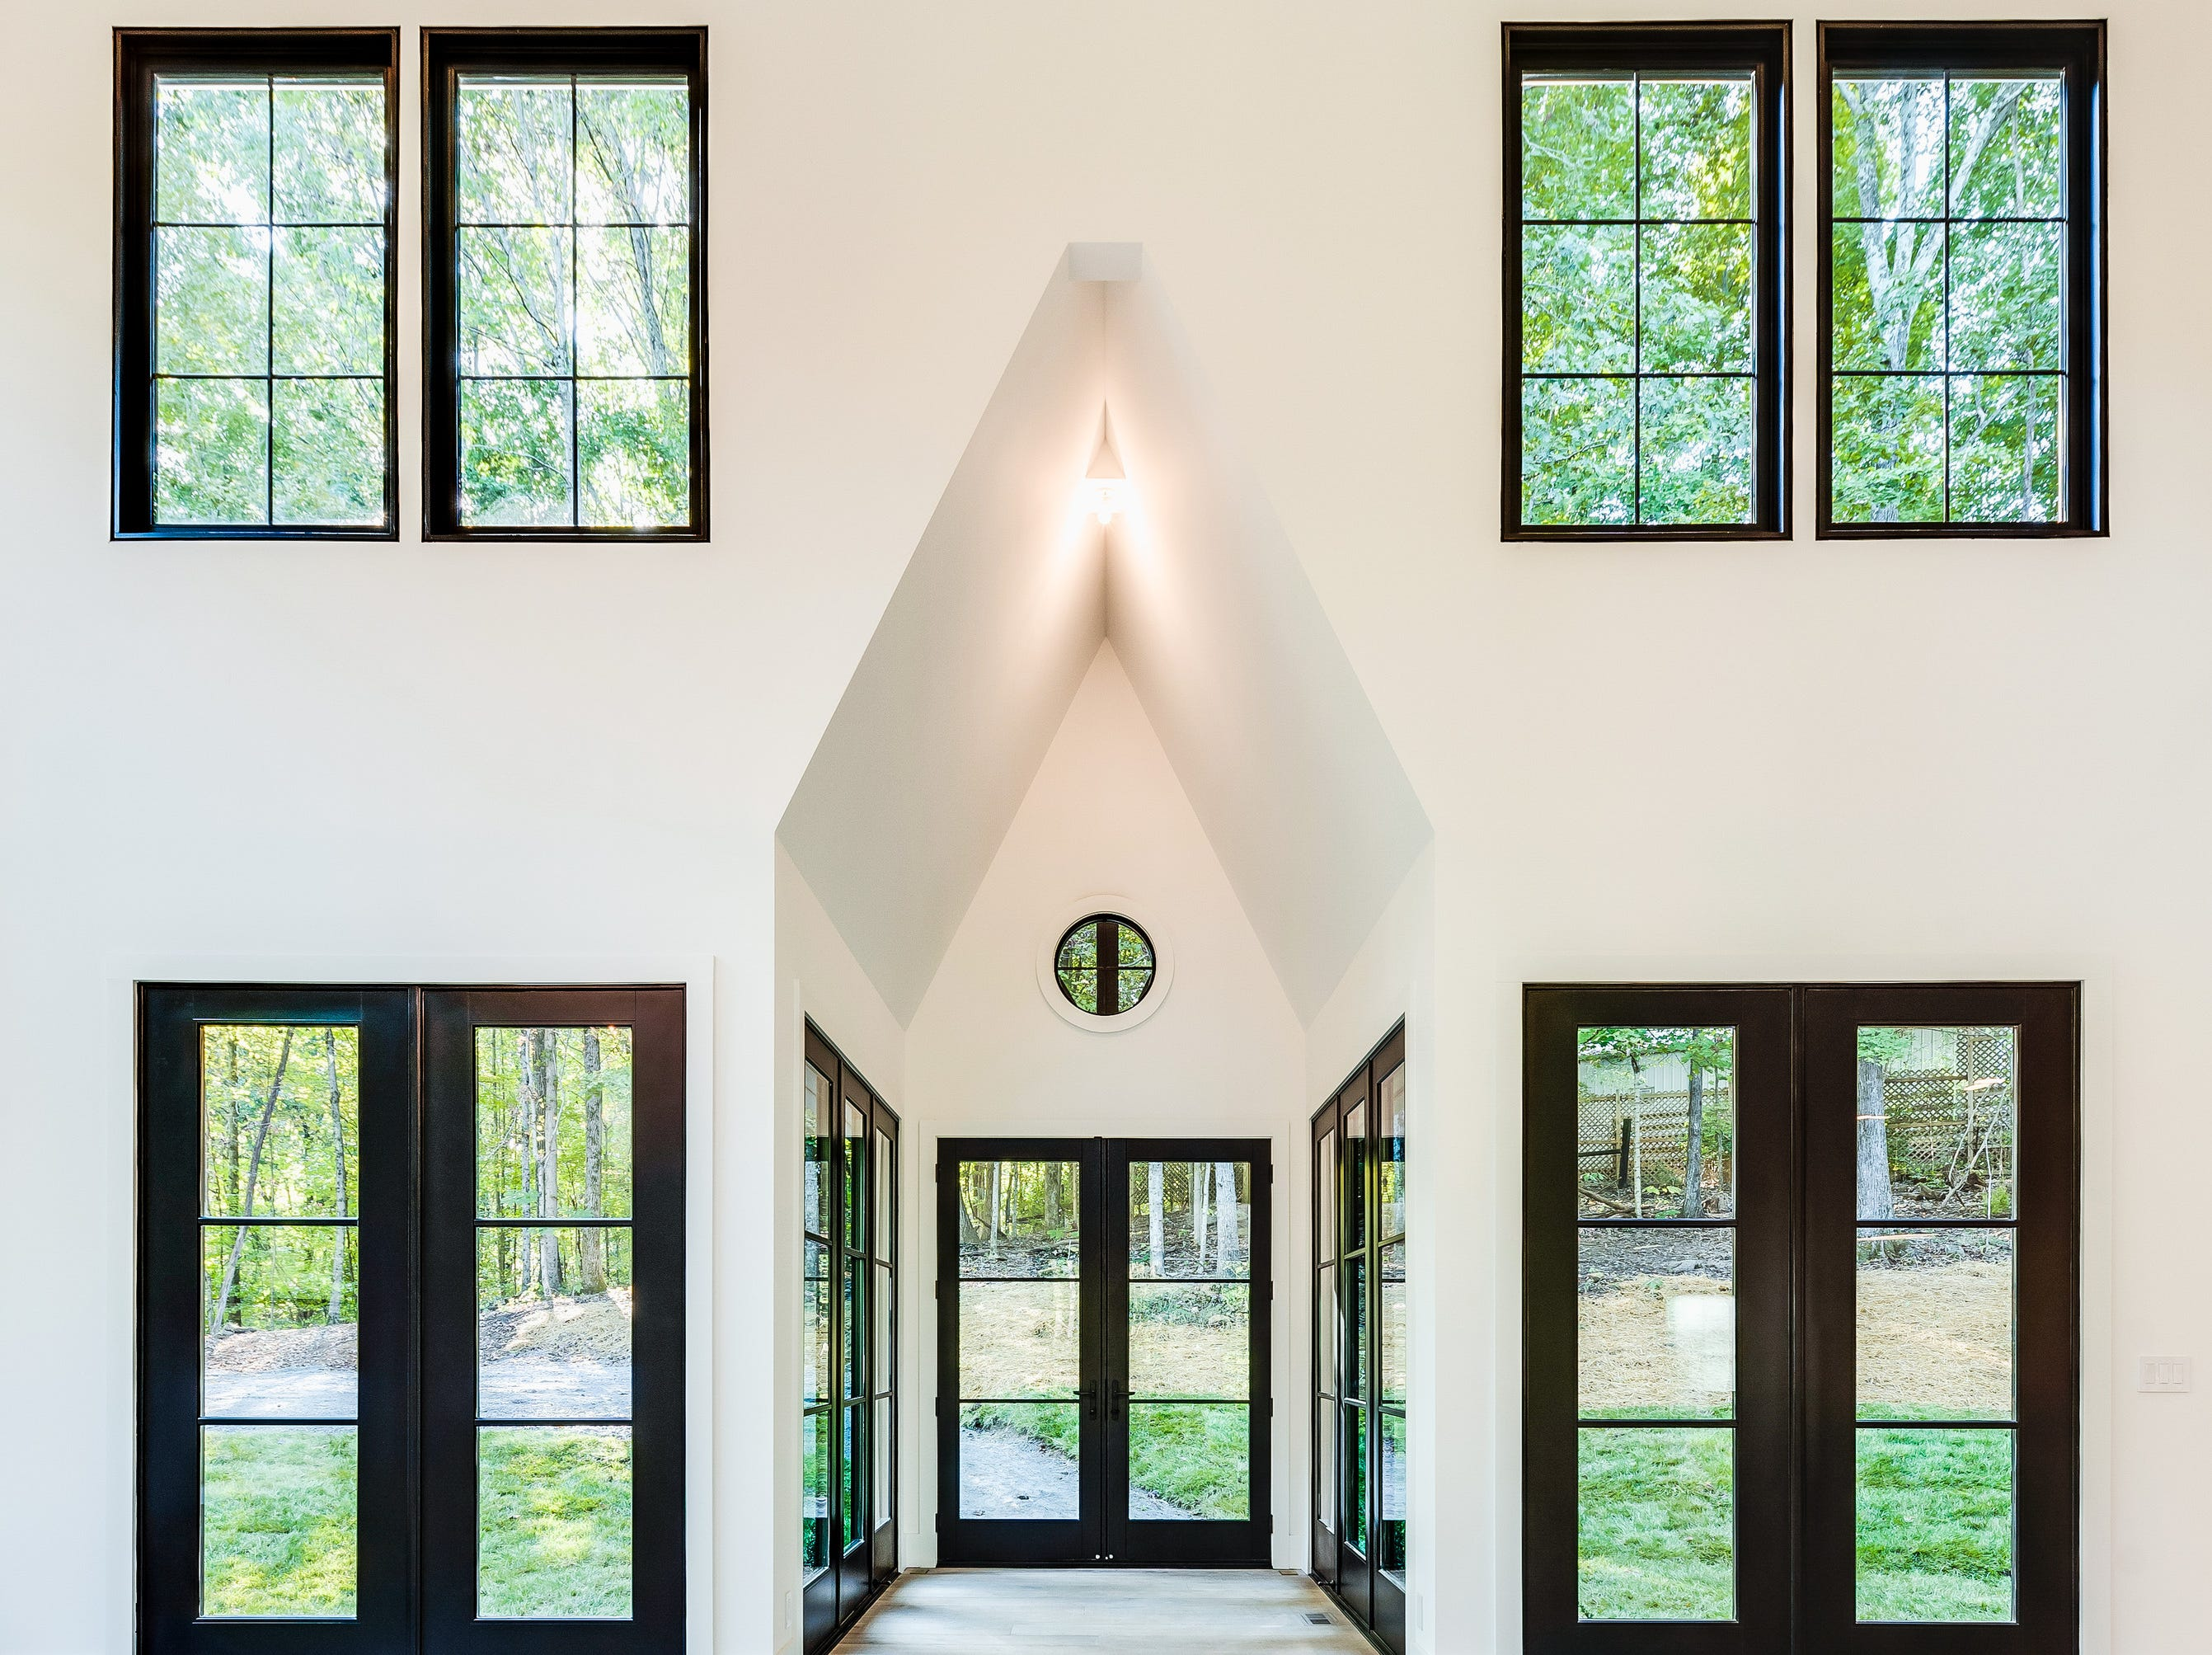 The inside of the farmhouse is drastically different from the exterior, with ample windows and stark white paint and light flooring with contrasting black window panes for a dramatic effect.